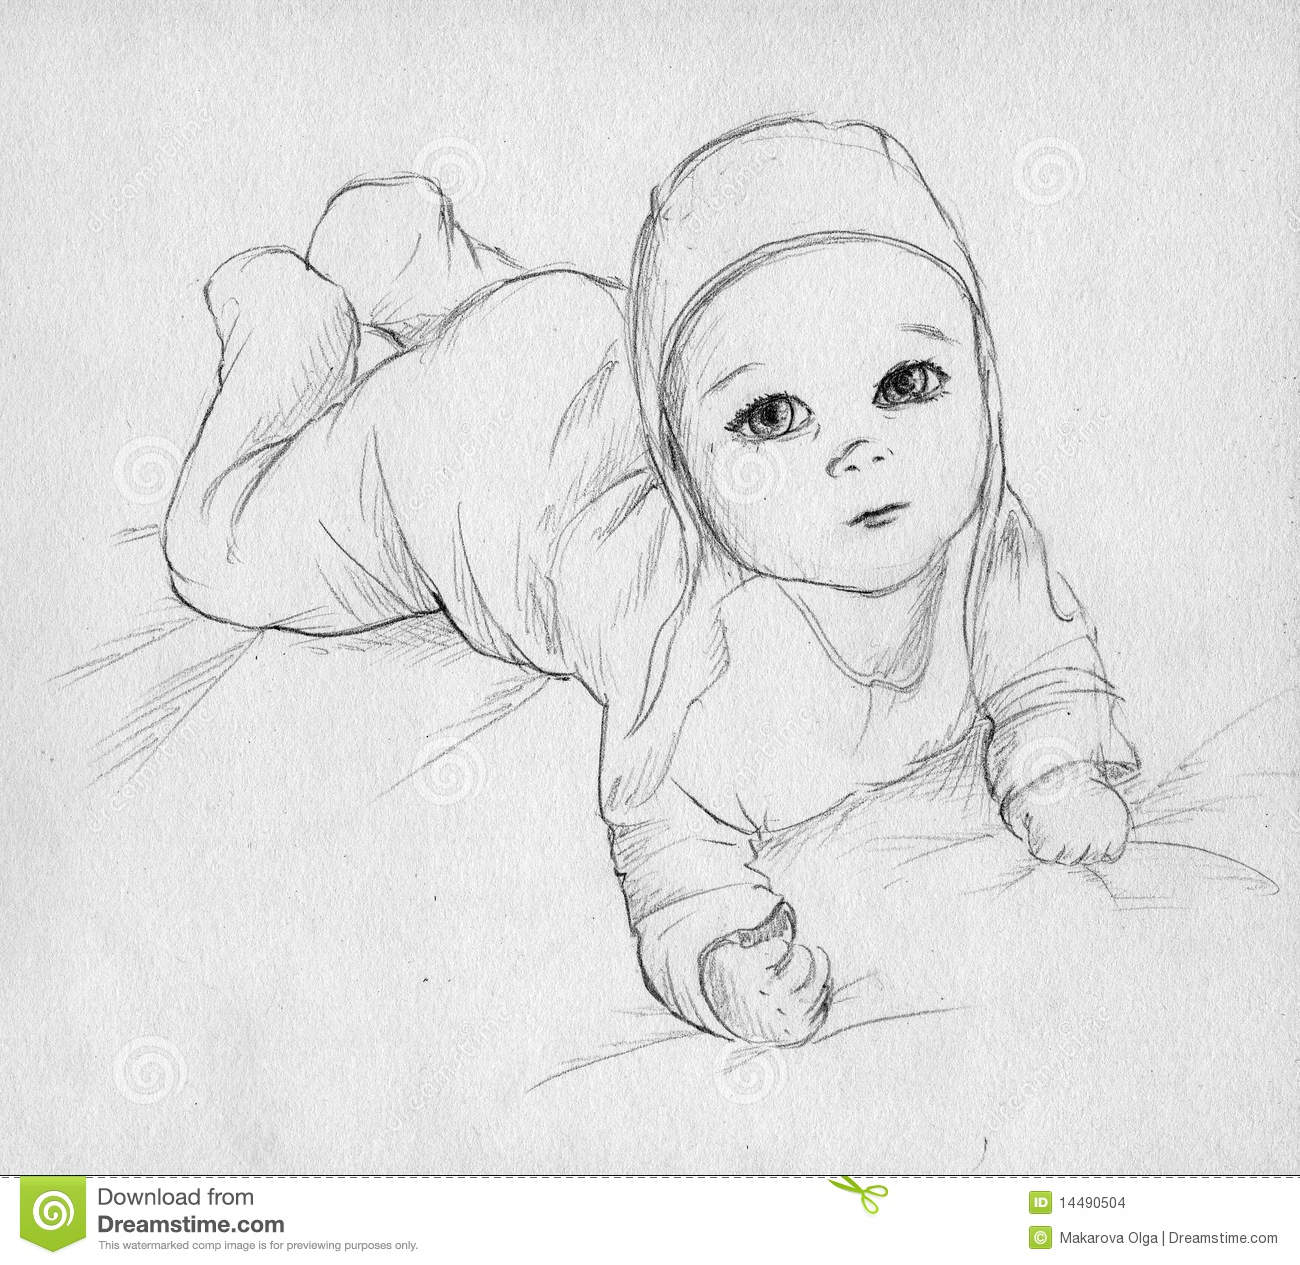 Cute baby lying on his or her tummy and looking up pencil drawing sketch